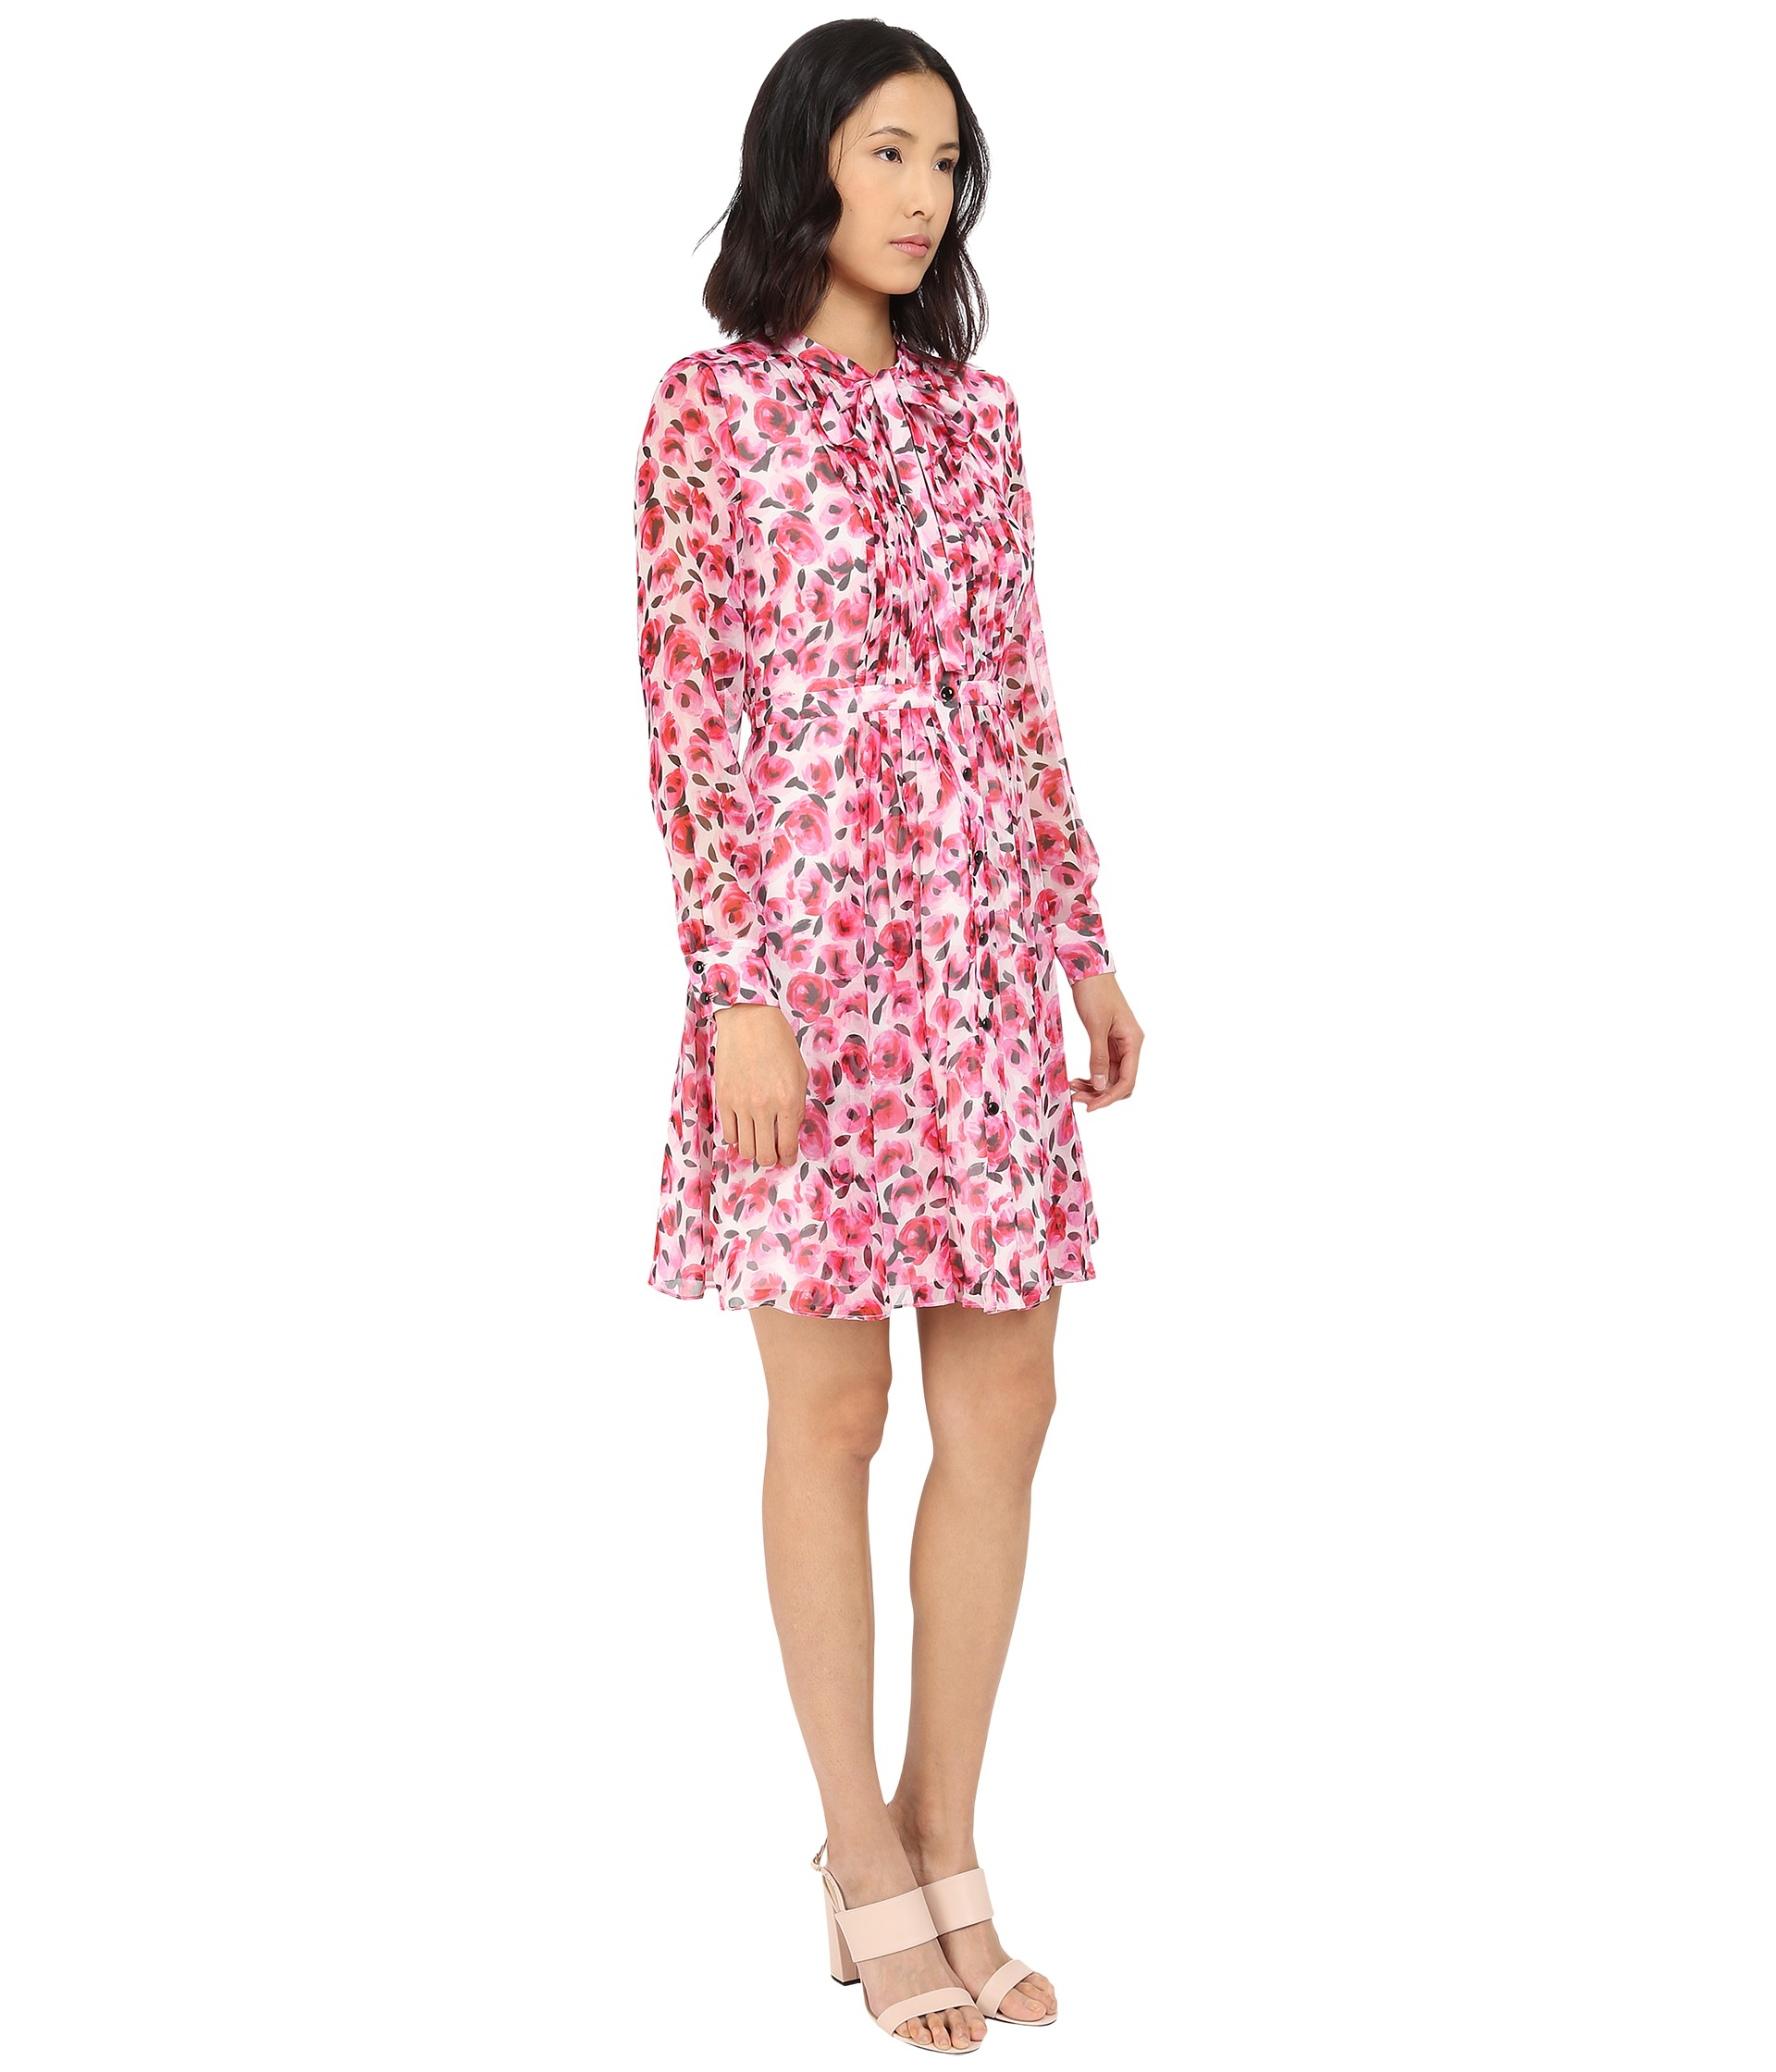 cc35ecdcd0 kate spade new york - Multicolor Mini Rose Pleated Shirtdress - Lyst